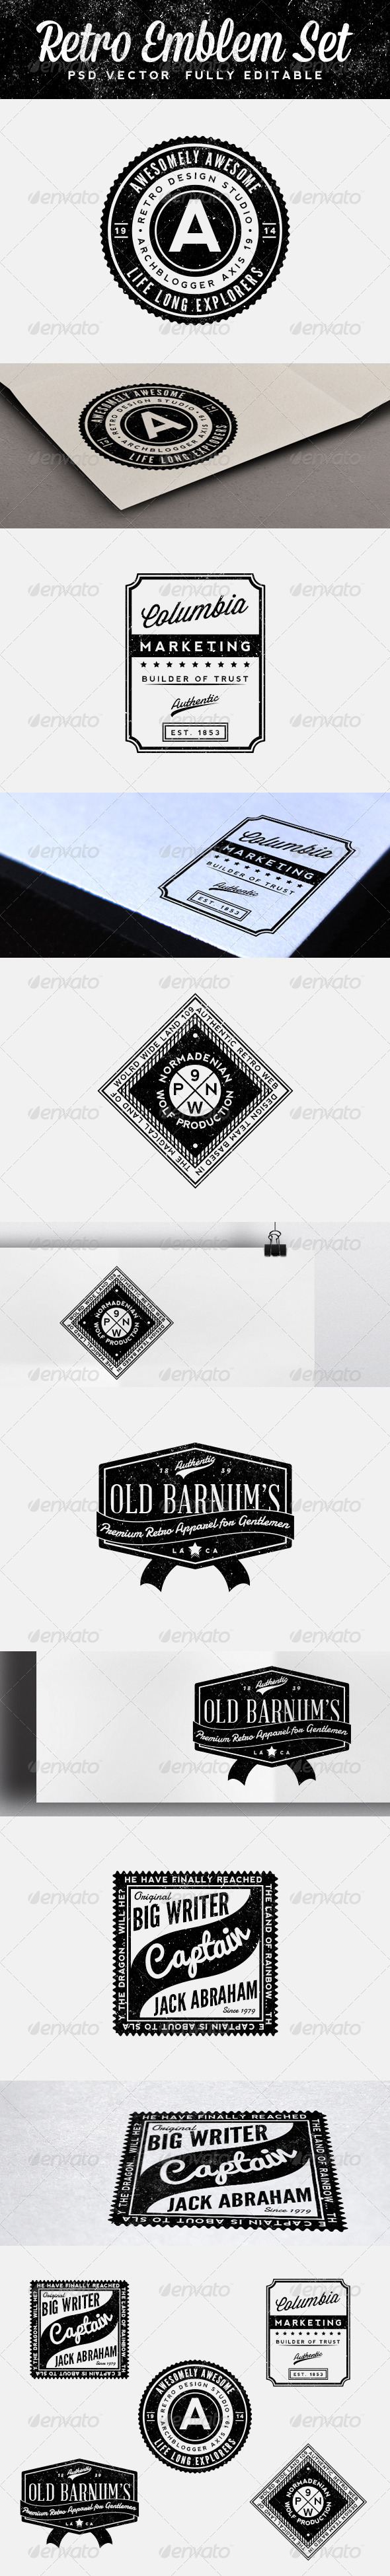 GraphicRiver Retro Emblem Set 6263001